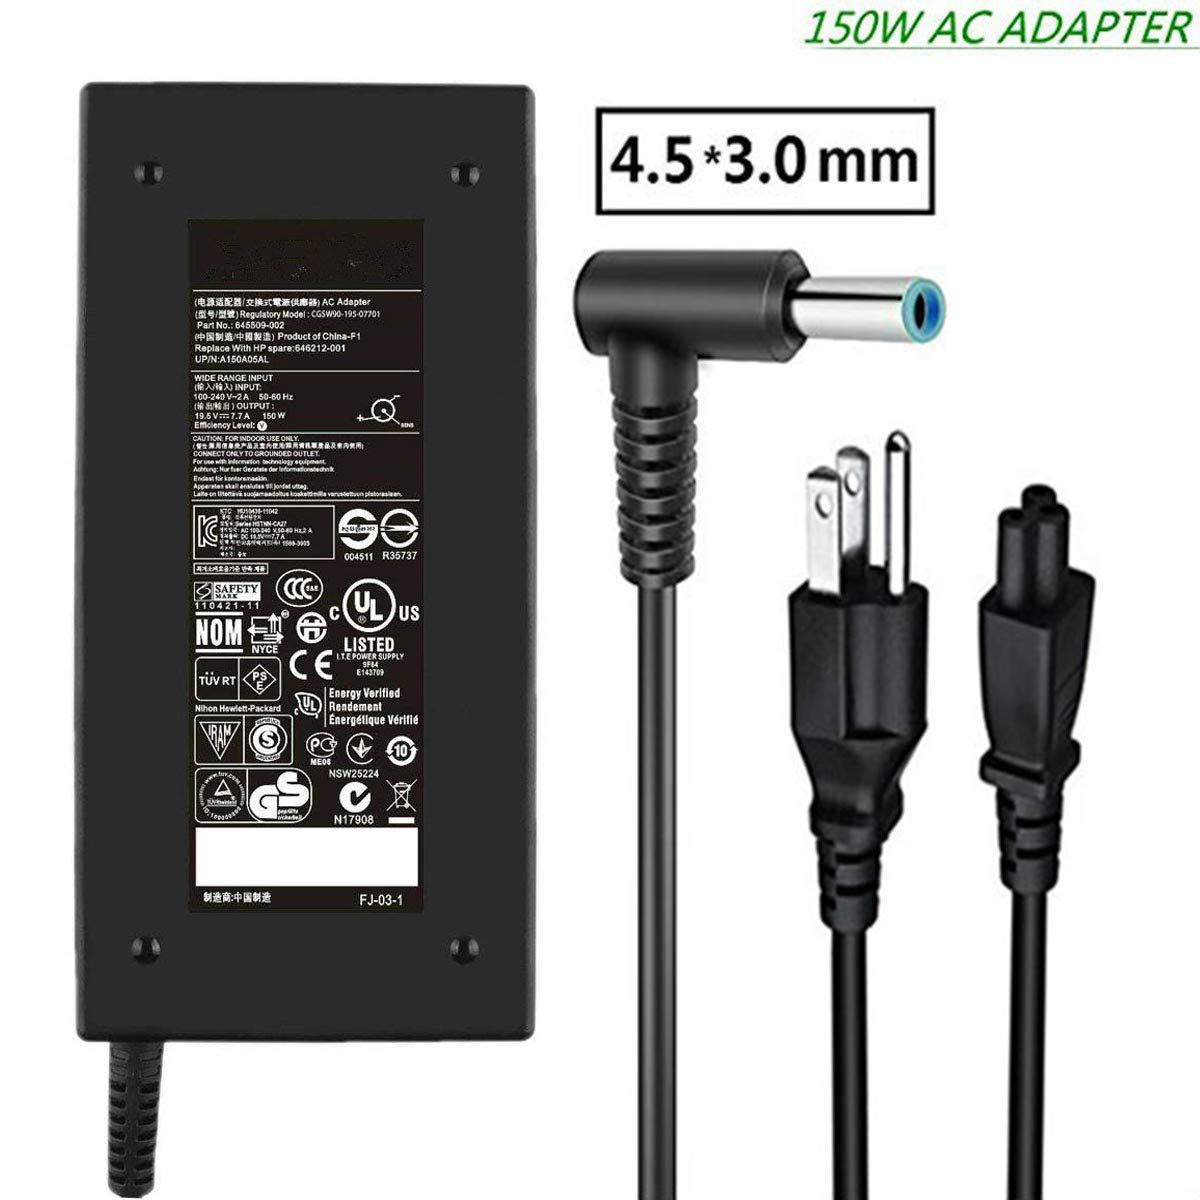 New19.5V 7.7A 150W AC Adapter Charger,for HP ZBook 15 G3 G4,HP ZBook Studio G3 G4,HP ZBook 15u G3 G4,HP OMEN 15, OMEN x by HP Laptop ADP-150XB B Power Supply Connector 4.5mm x 3.0mm